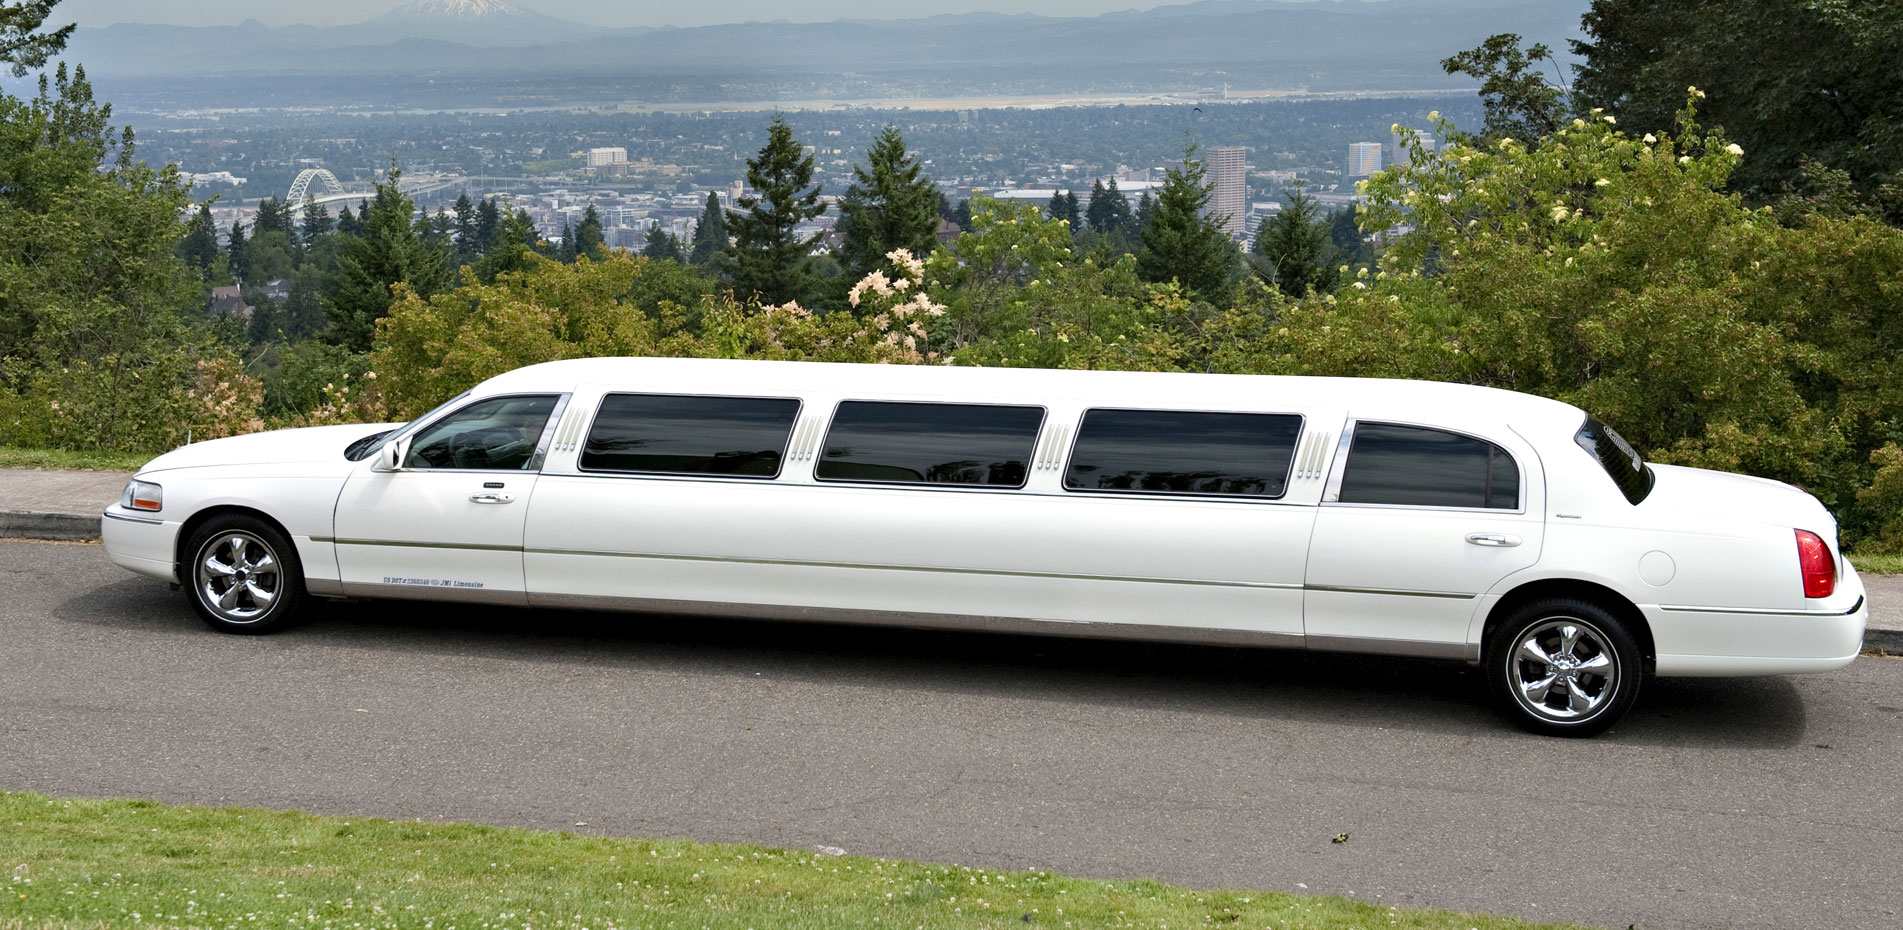 Portland Super Stretch Limo From Jmi Limousine